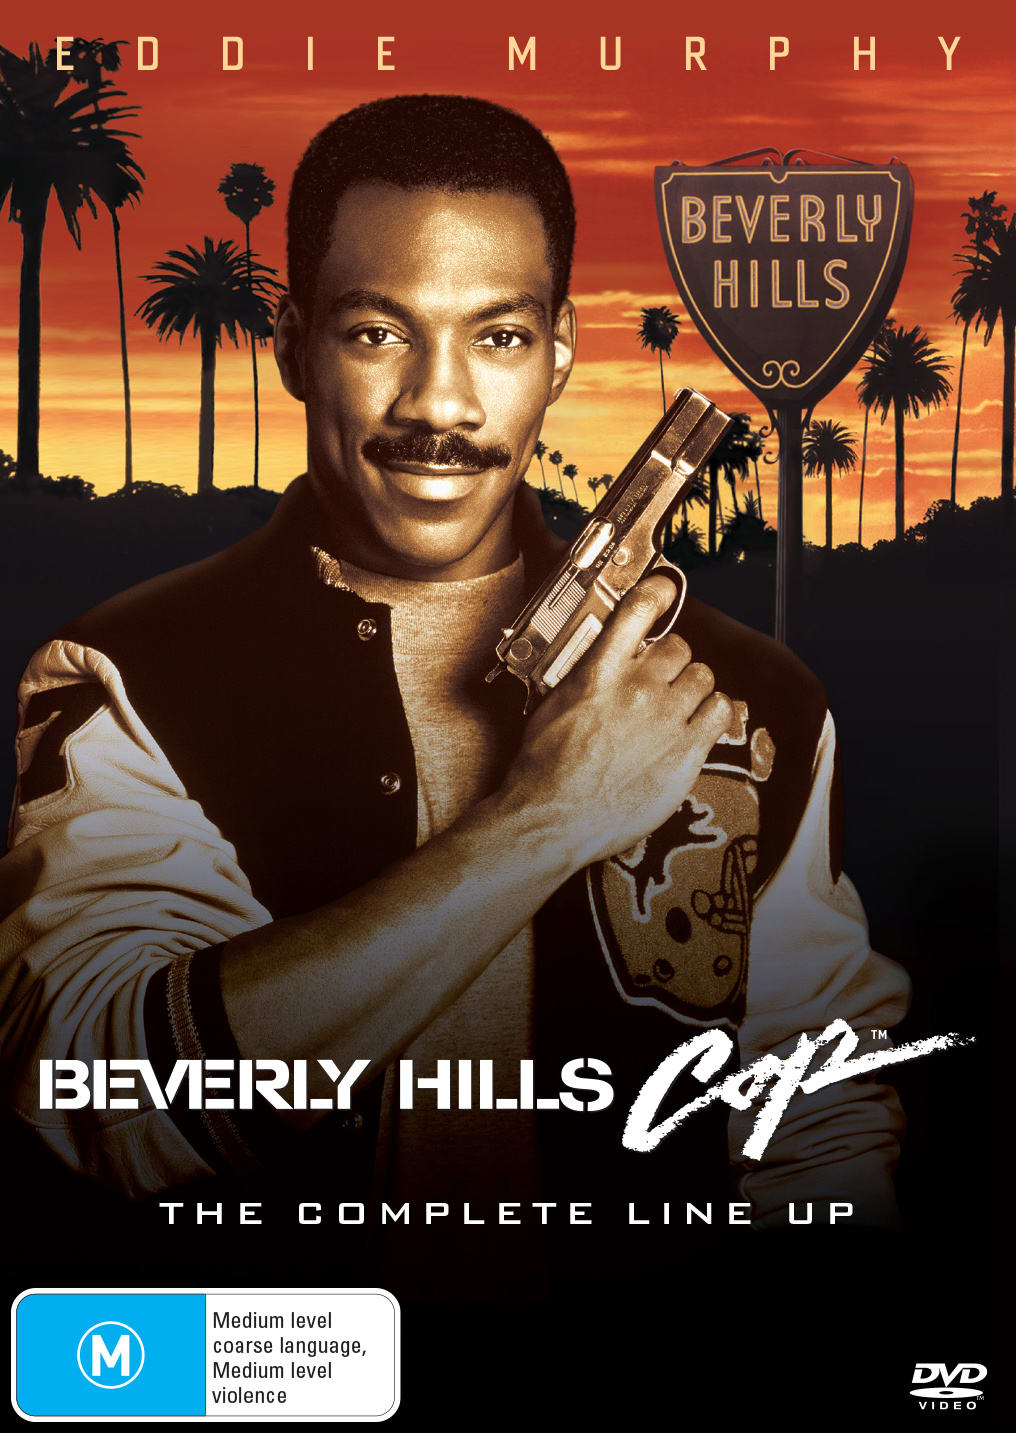 Beverly Hills Cop 1-3 (Box Set) [DVD]